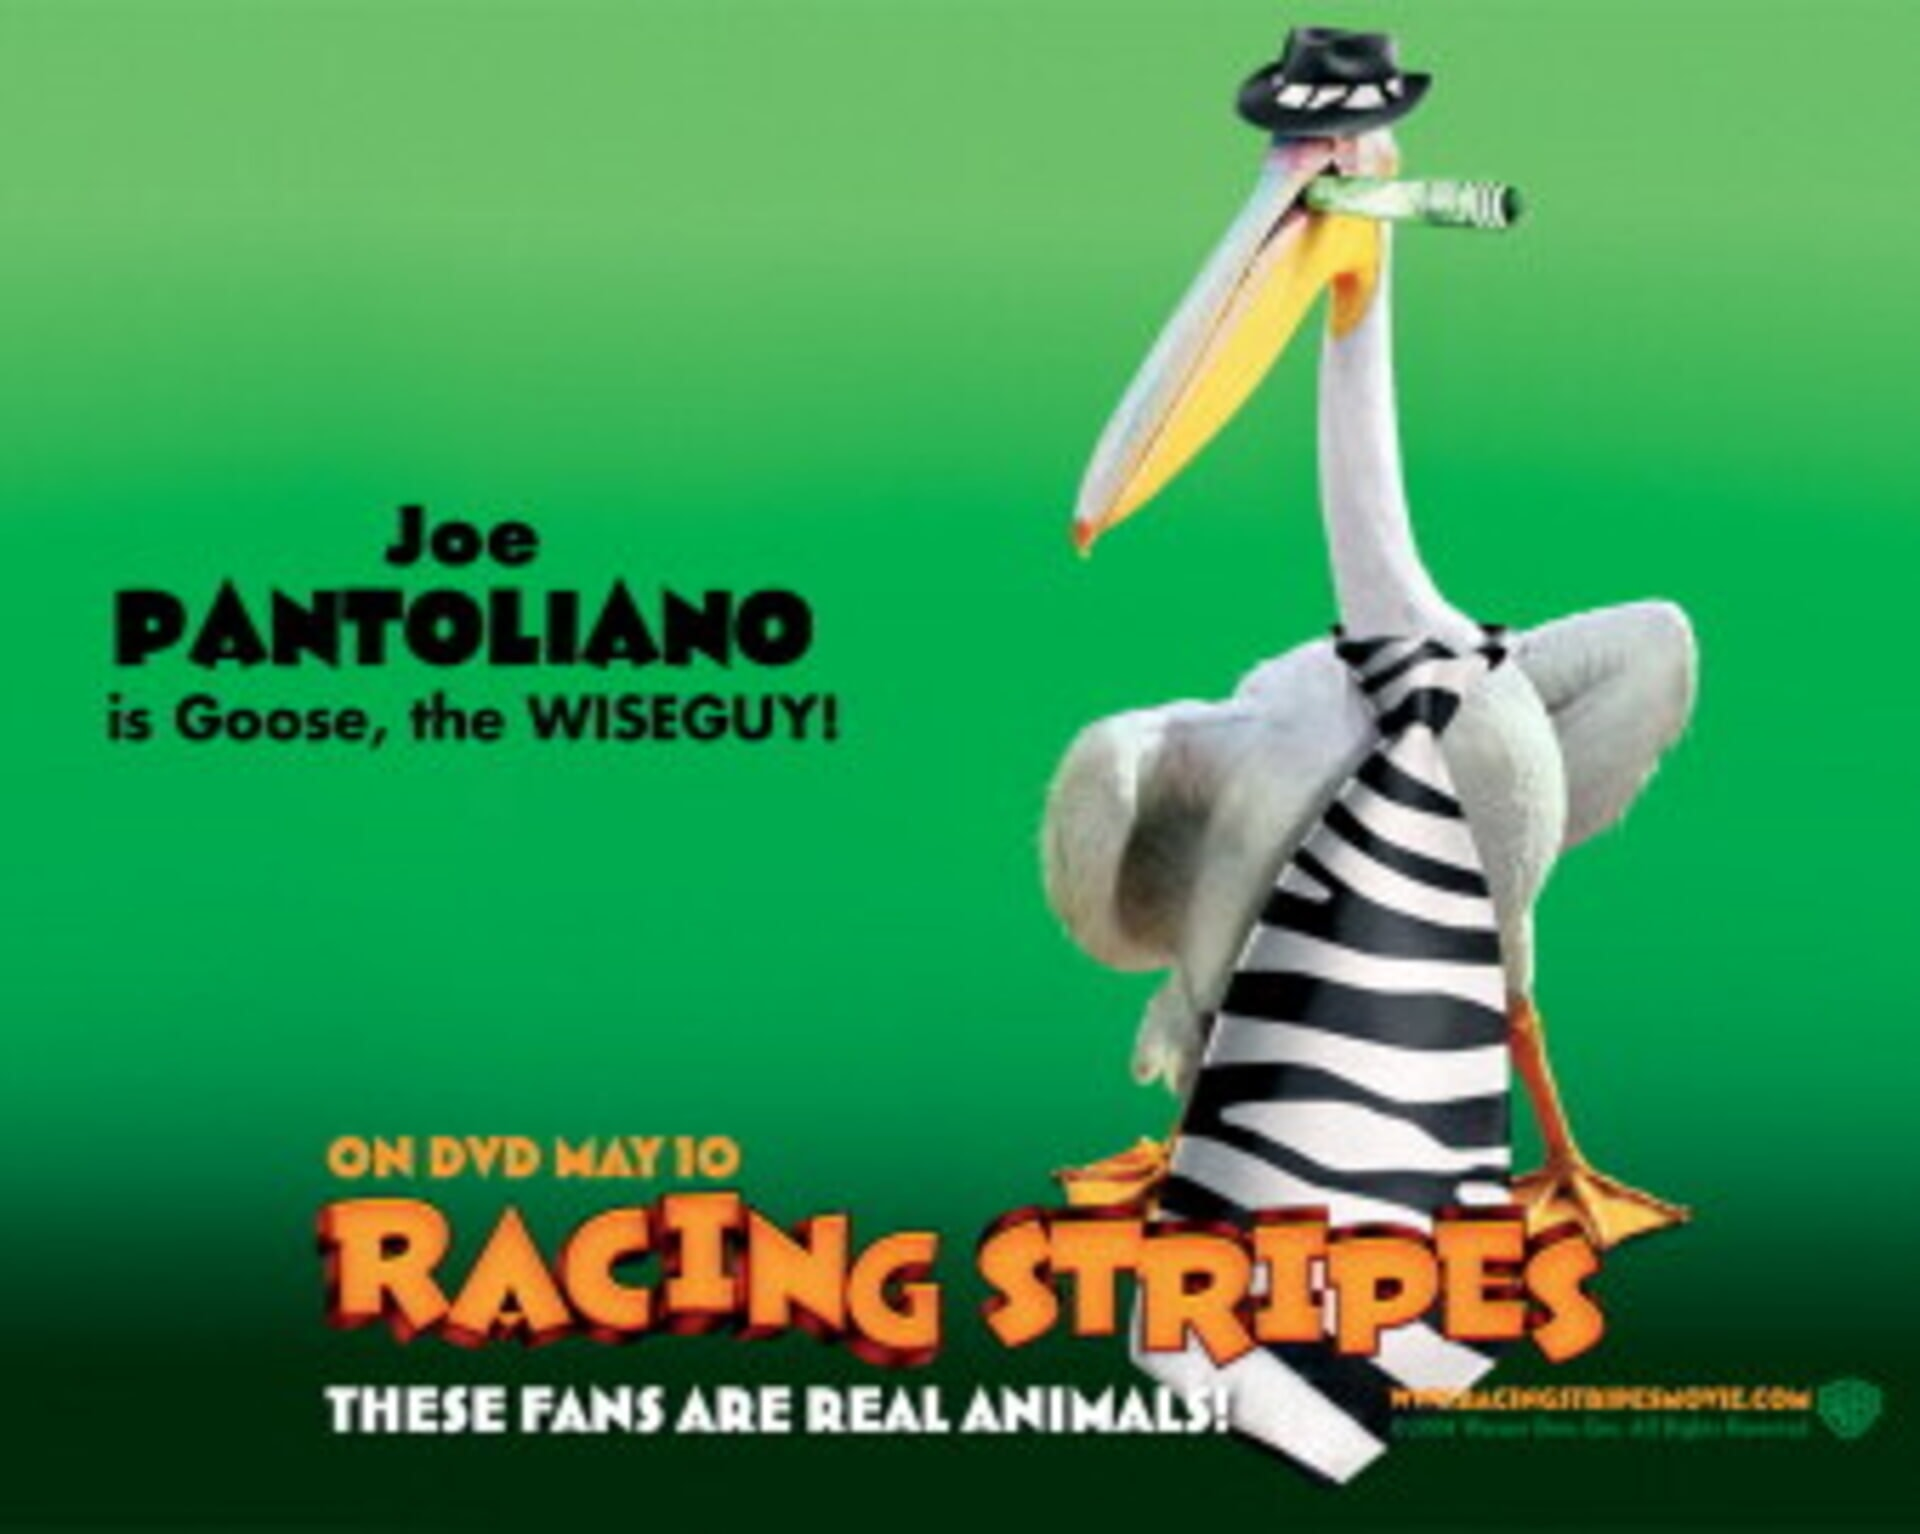 Racing Stripes - Image 5